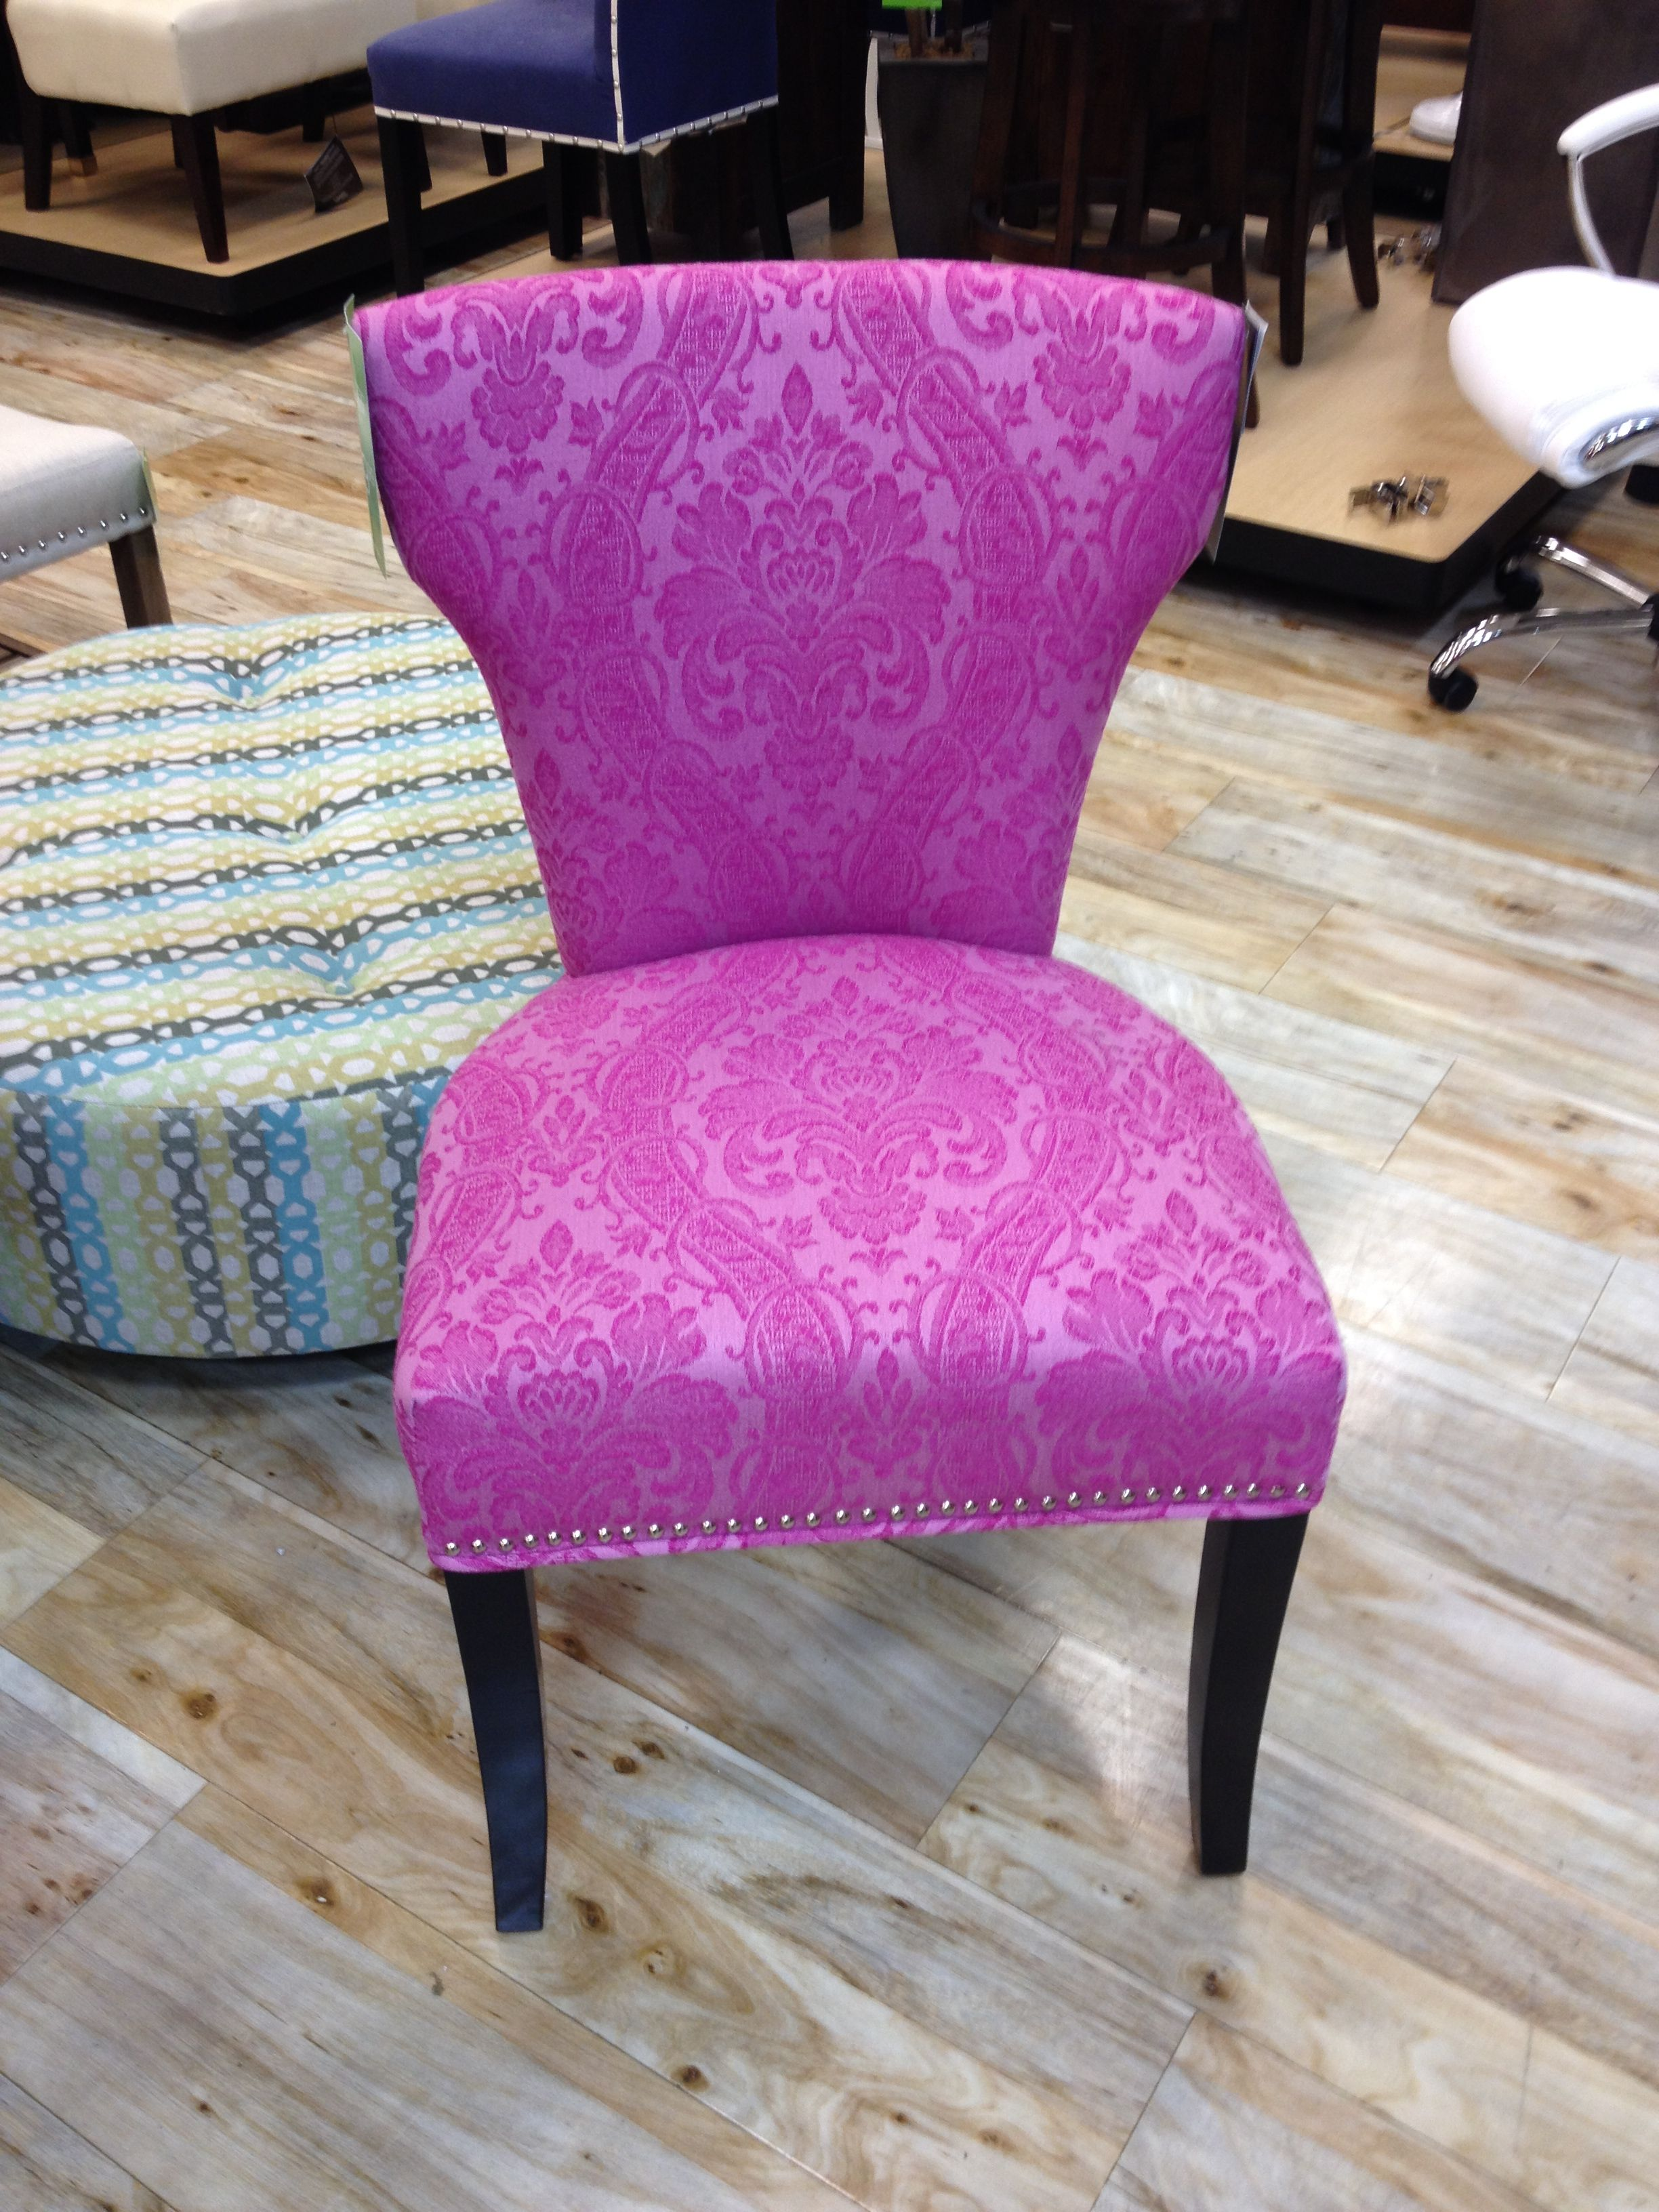 Cynthia Rowley Chair At Home Goods 129 I Just Bought This In A Really